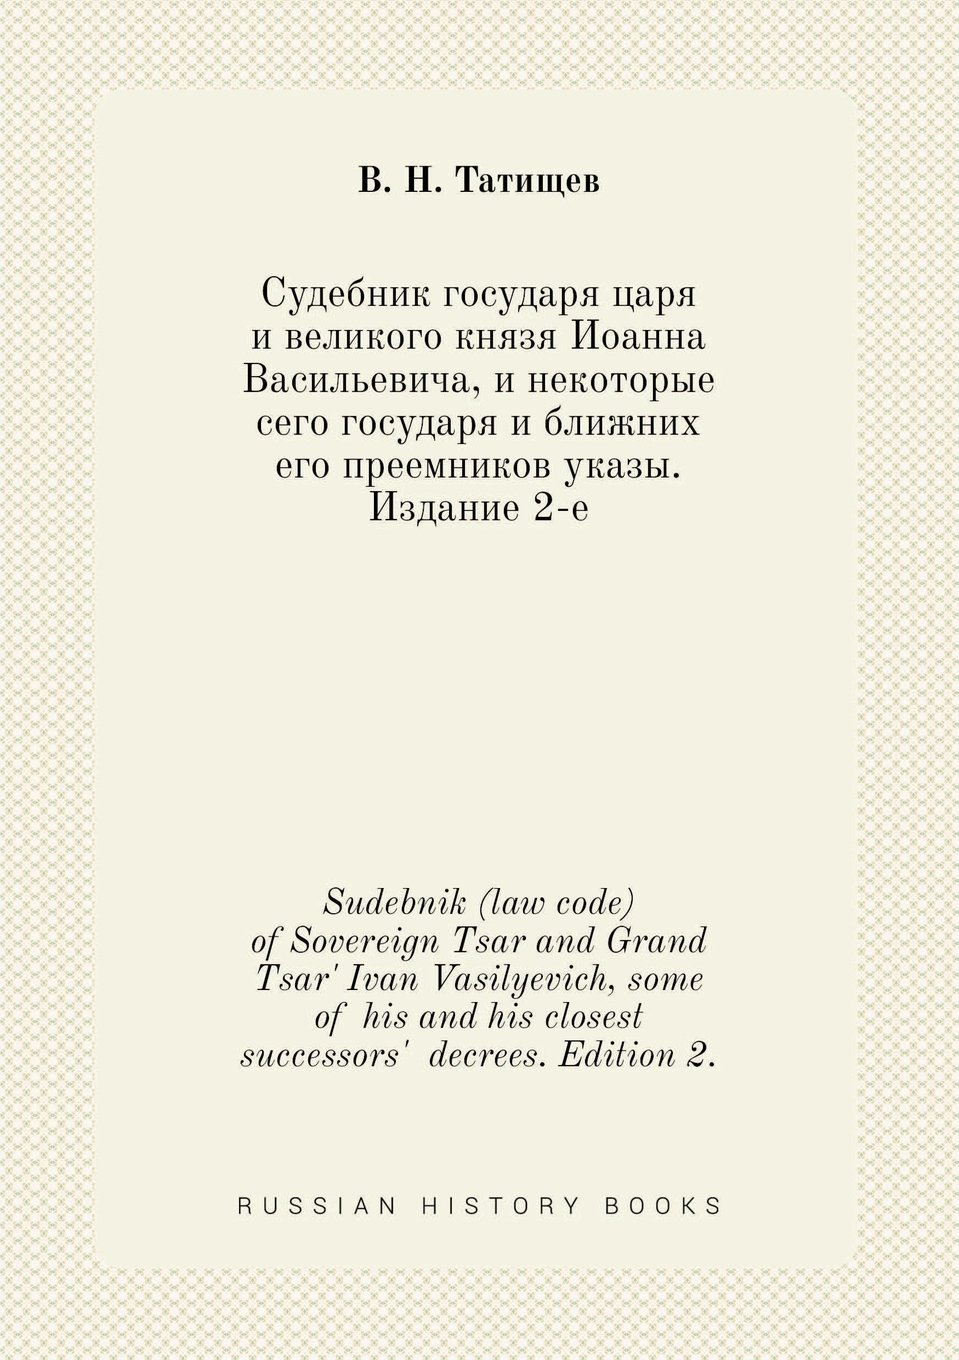 Download Sudebnik (law code) of Sovereign Tsar and Grand Tsar' Ivan Vasilyevich, some of  his and his closest successors'  decrees. Edition 2. (Russian Edition) ebook